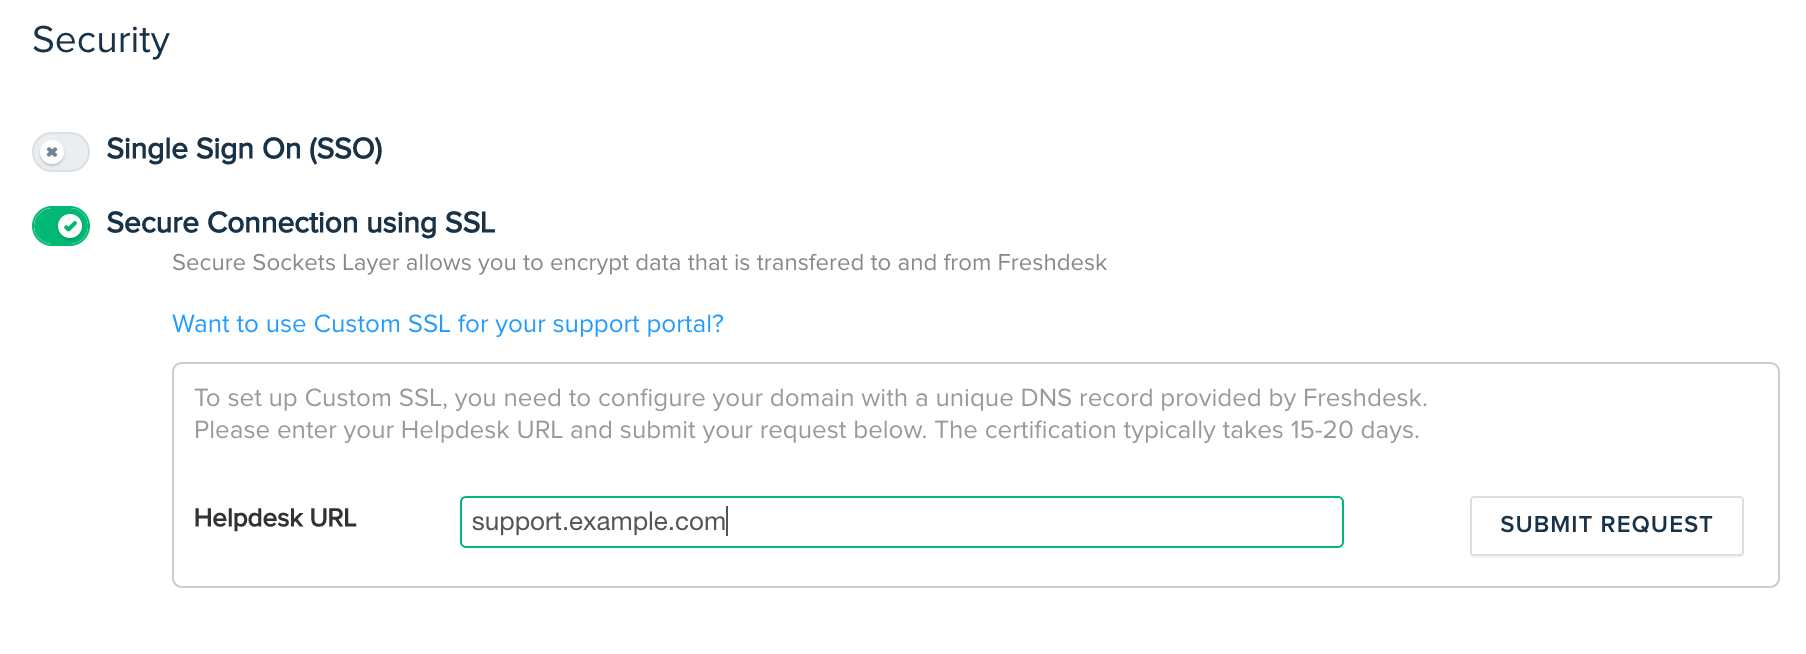 Configuring A Custom Ssl Certificate For Your Support Portal Freshdesk